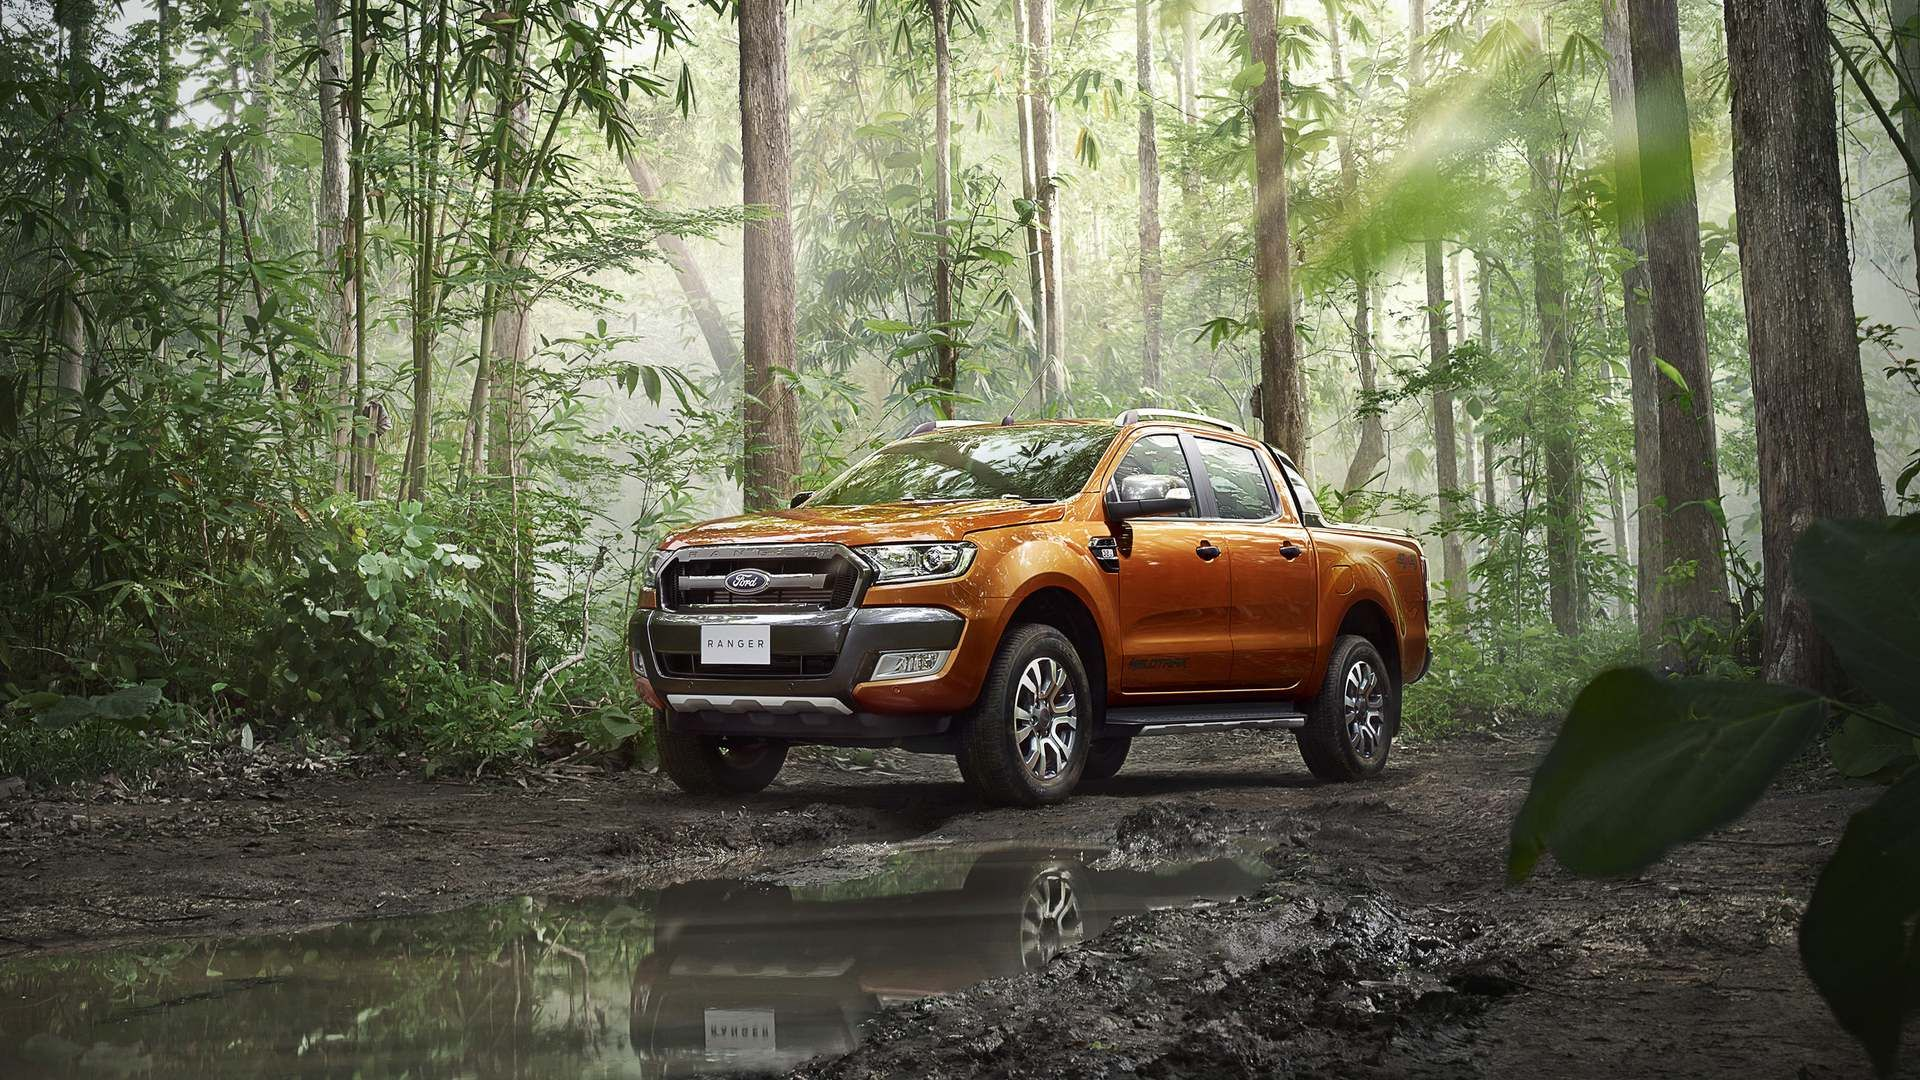 2015 Ford Ranger Wildtrak Wallpaper 2019 ford ranger